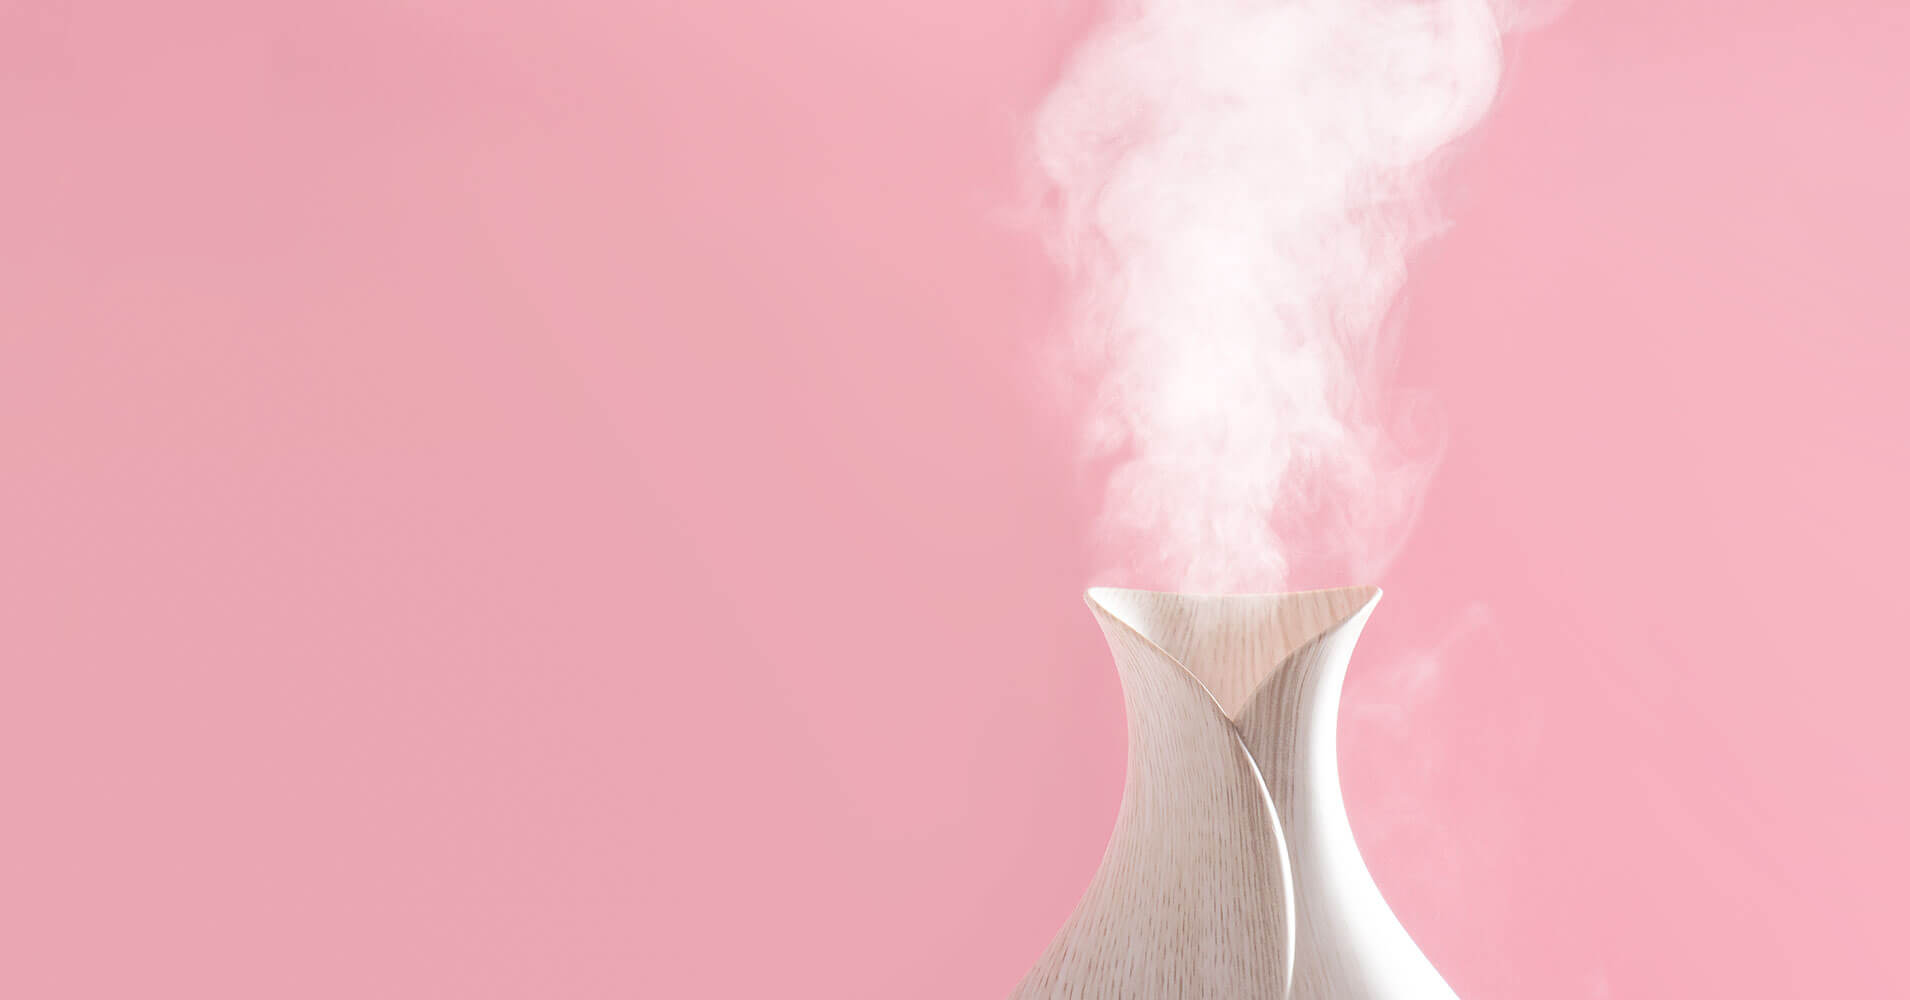 How to get rid of dry skin - use a humidifier